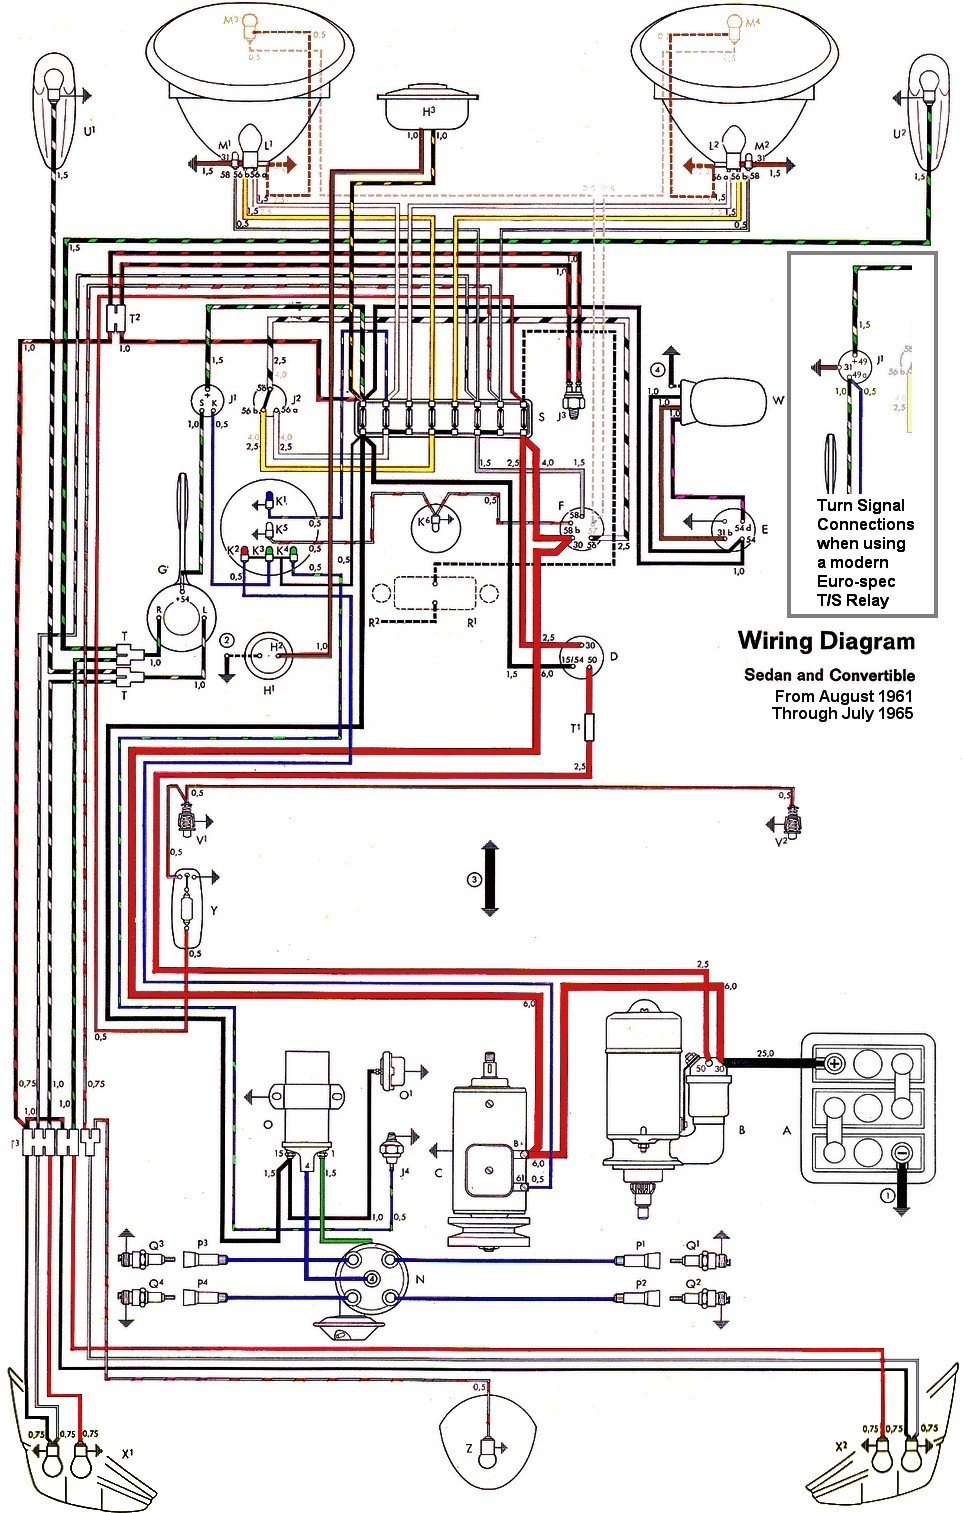 bug_62 65withinset wiring diagram vw beetle sedan and convertible 1961 1965 vw 1971 vw bus wiring diagram at nearapp.co